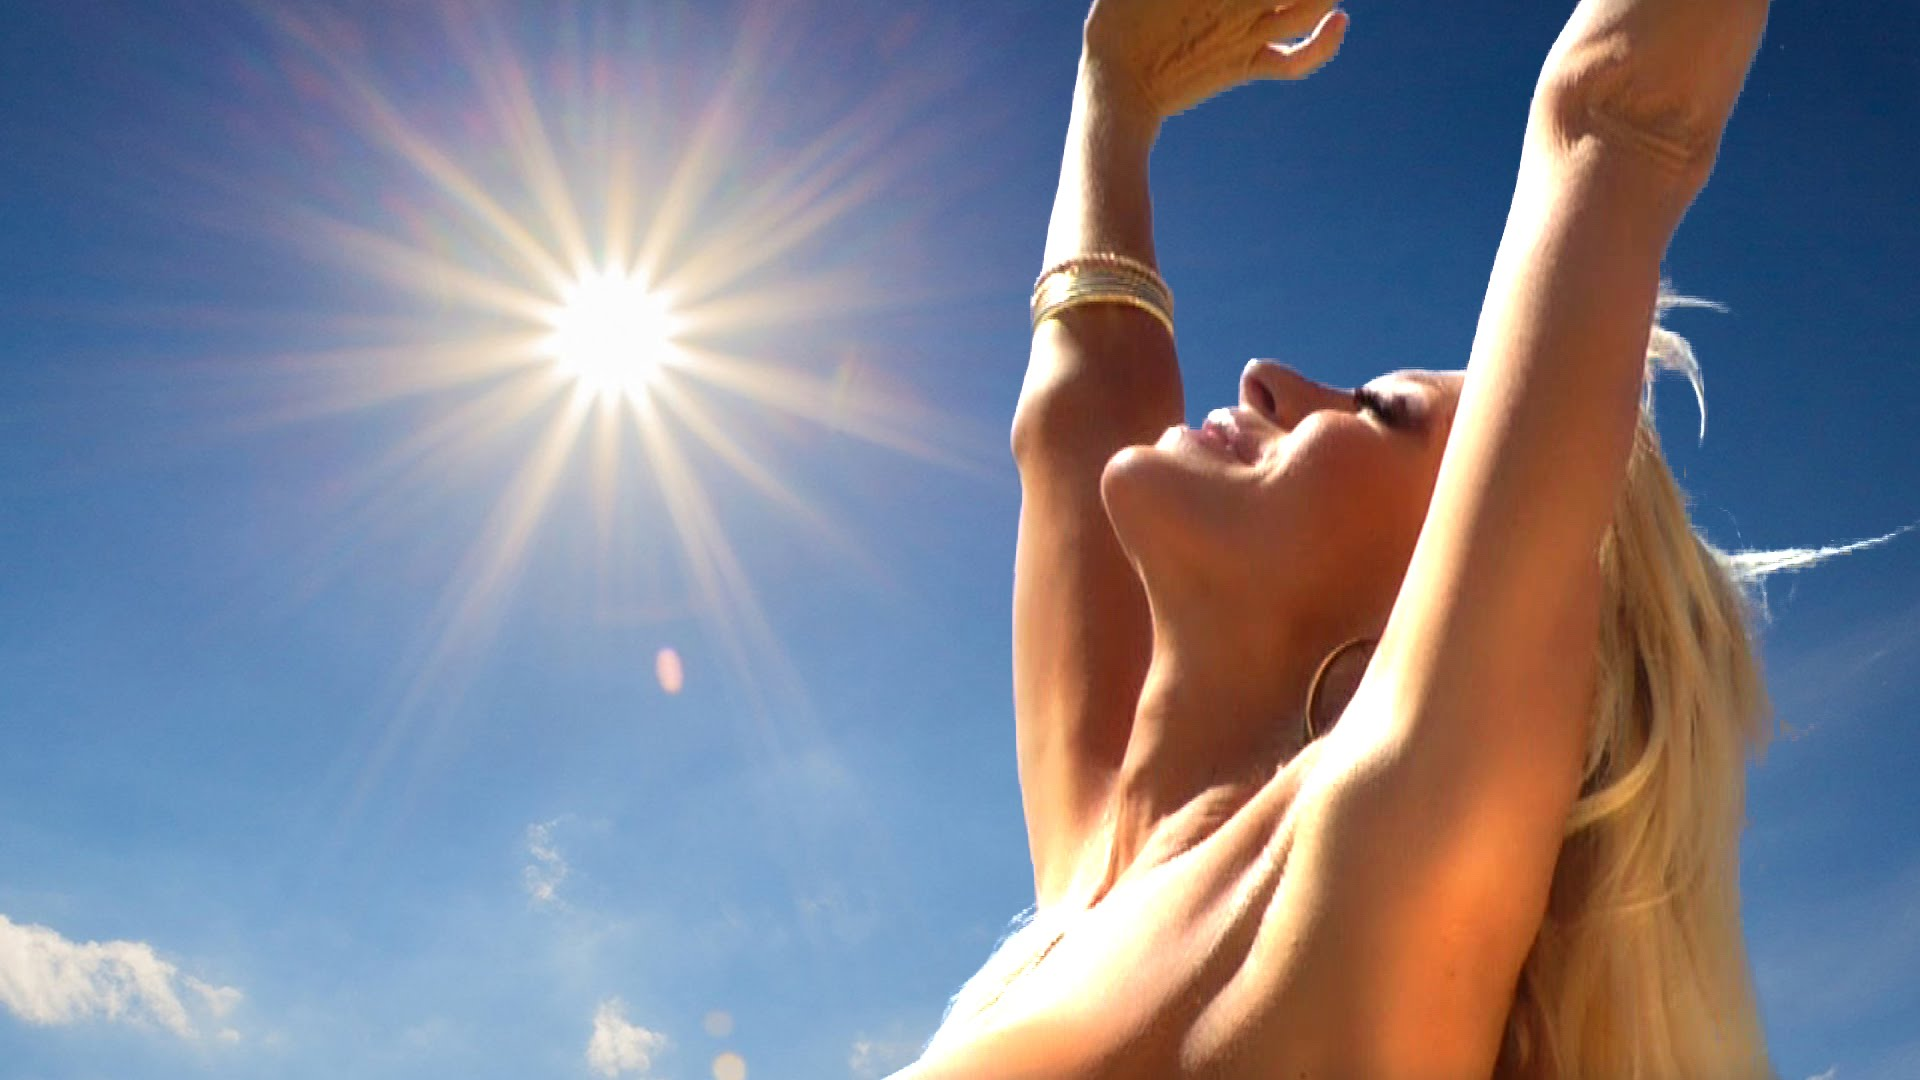 Healing Benefits Of Sunlight On Skin